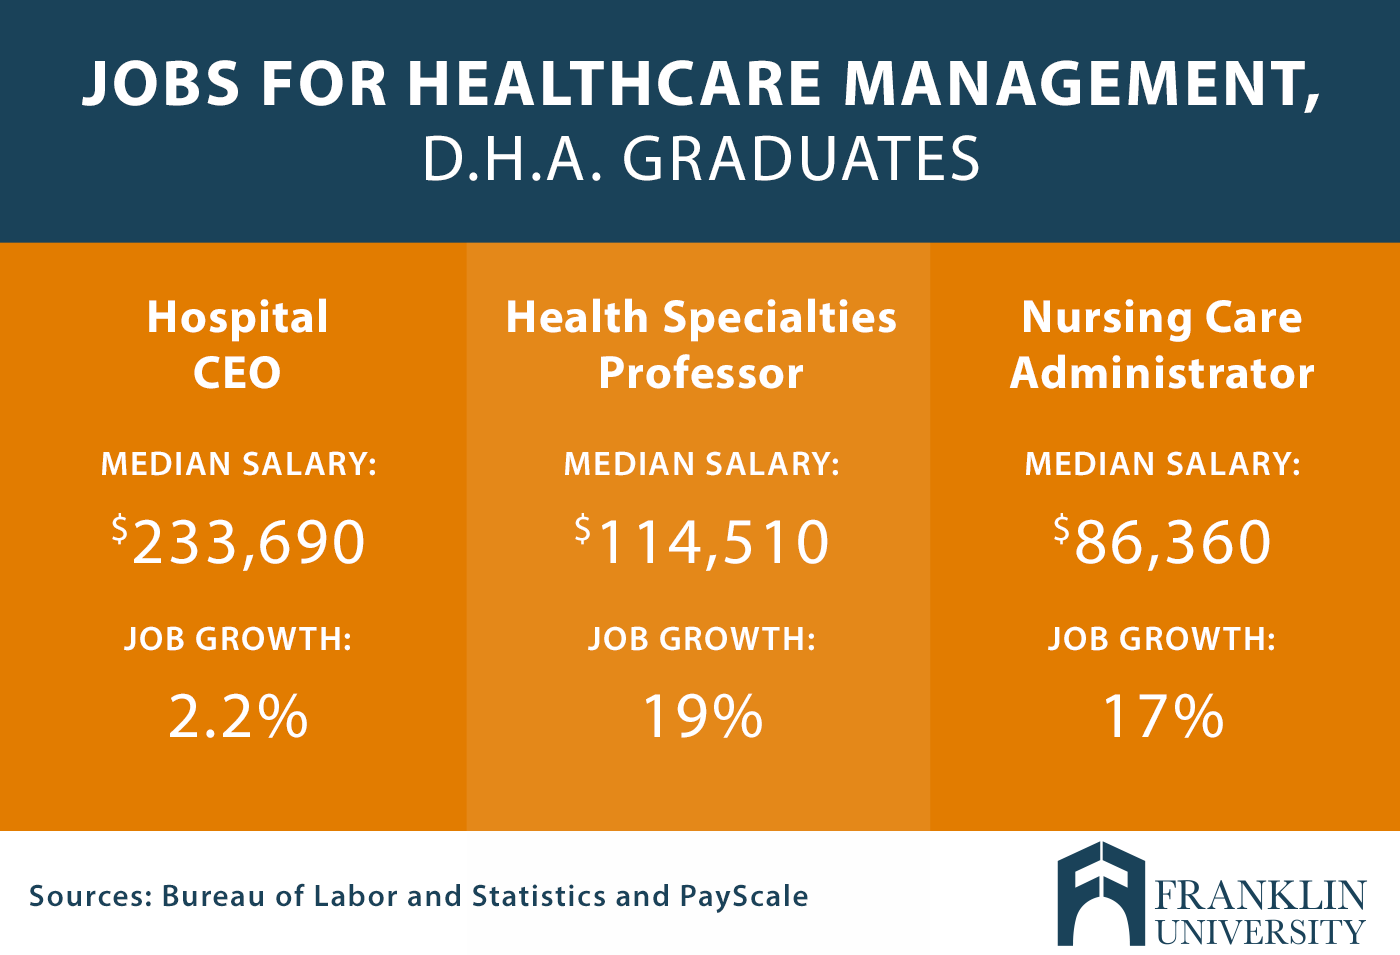 graphic describes jobs for healthcare management, D.H.A. graduates